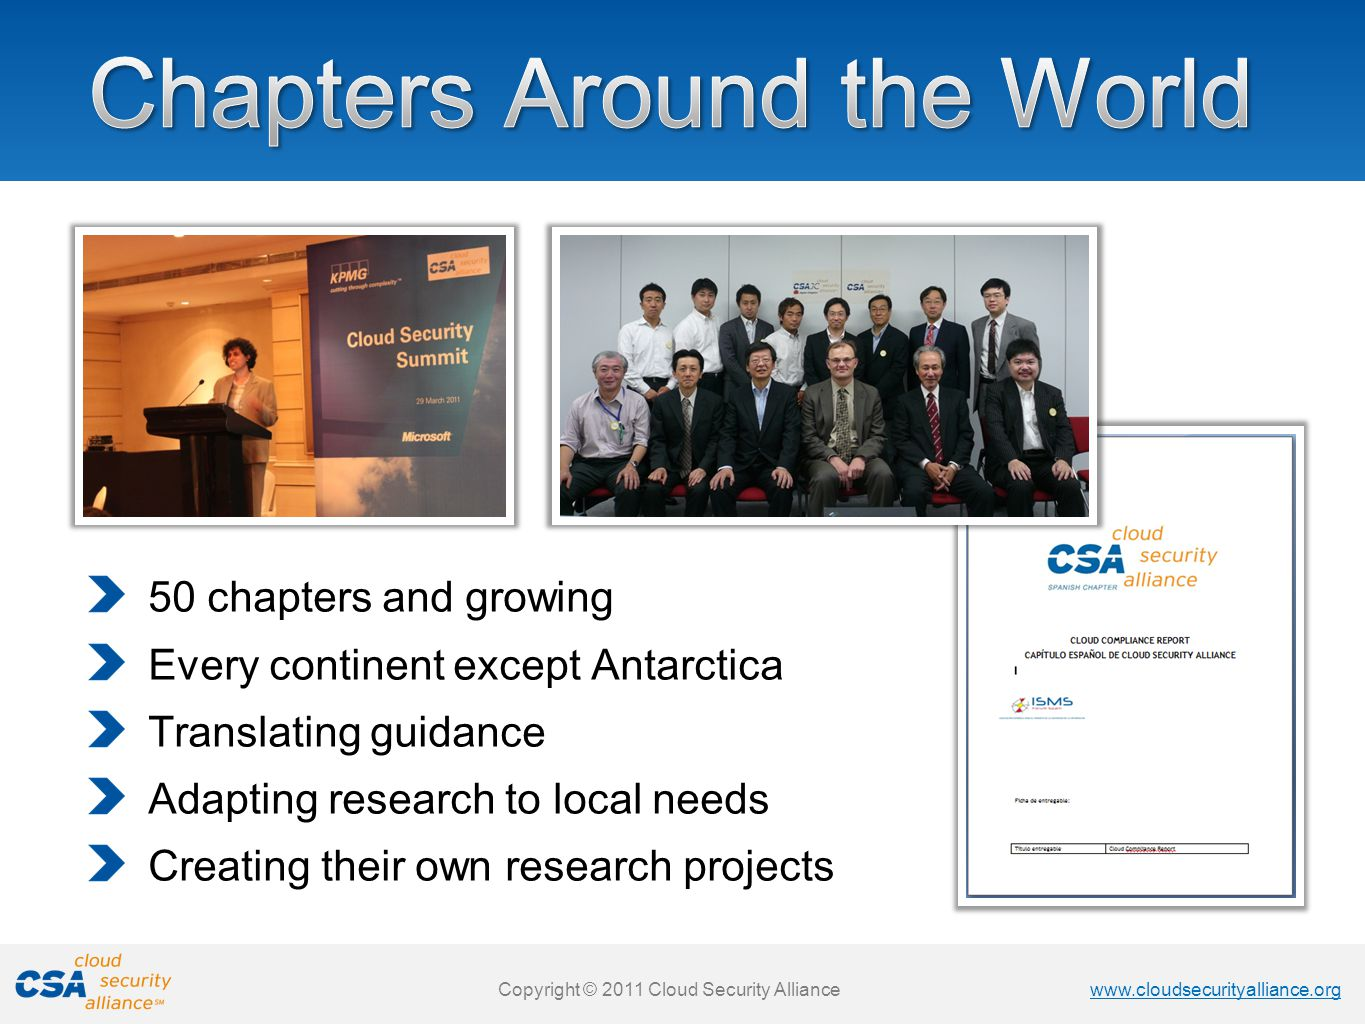 Chapters Around the World